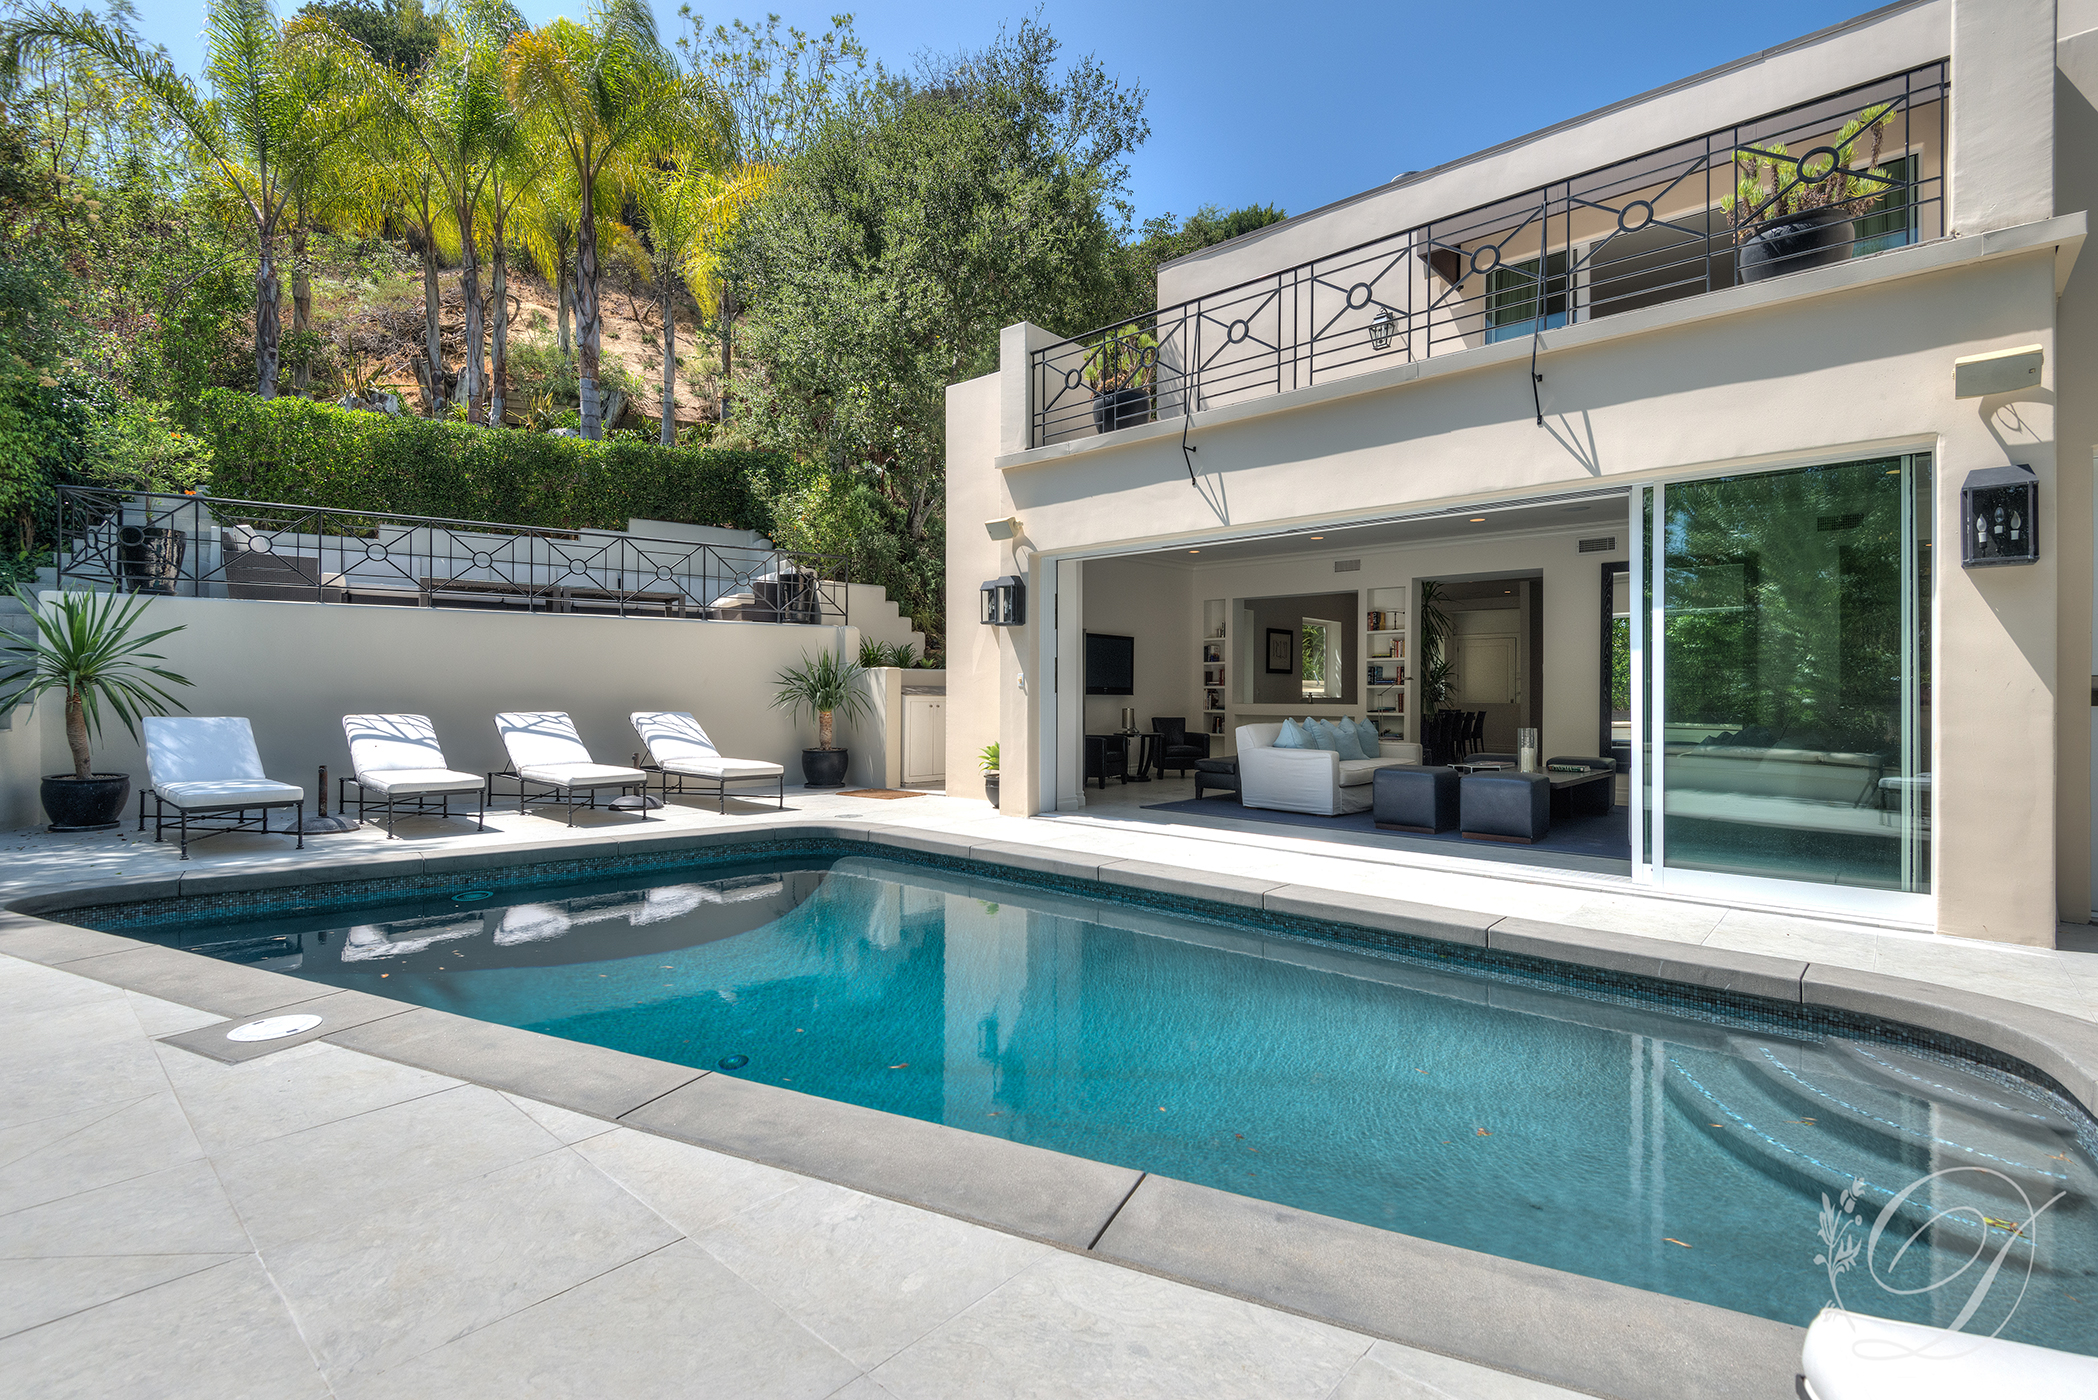 007_Exterior_Beverly-Hills-Pool-1